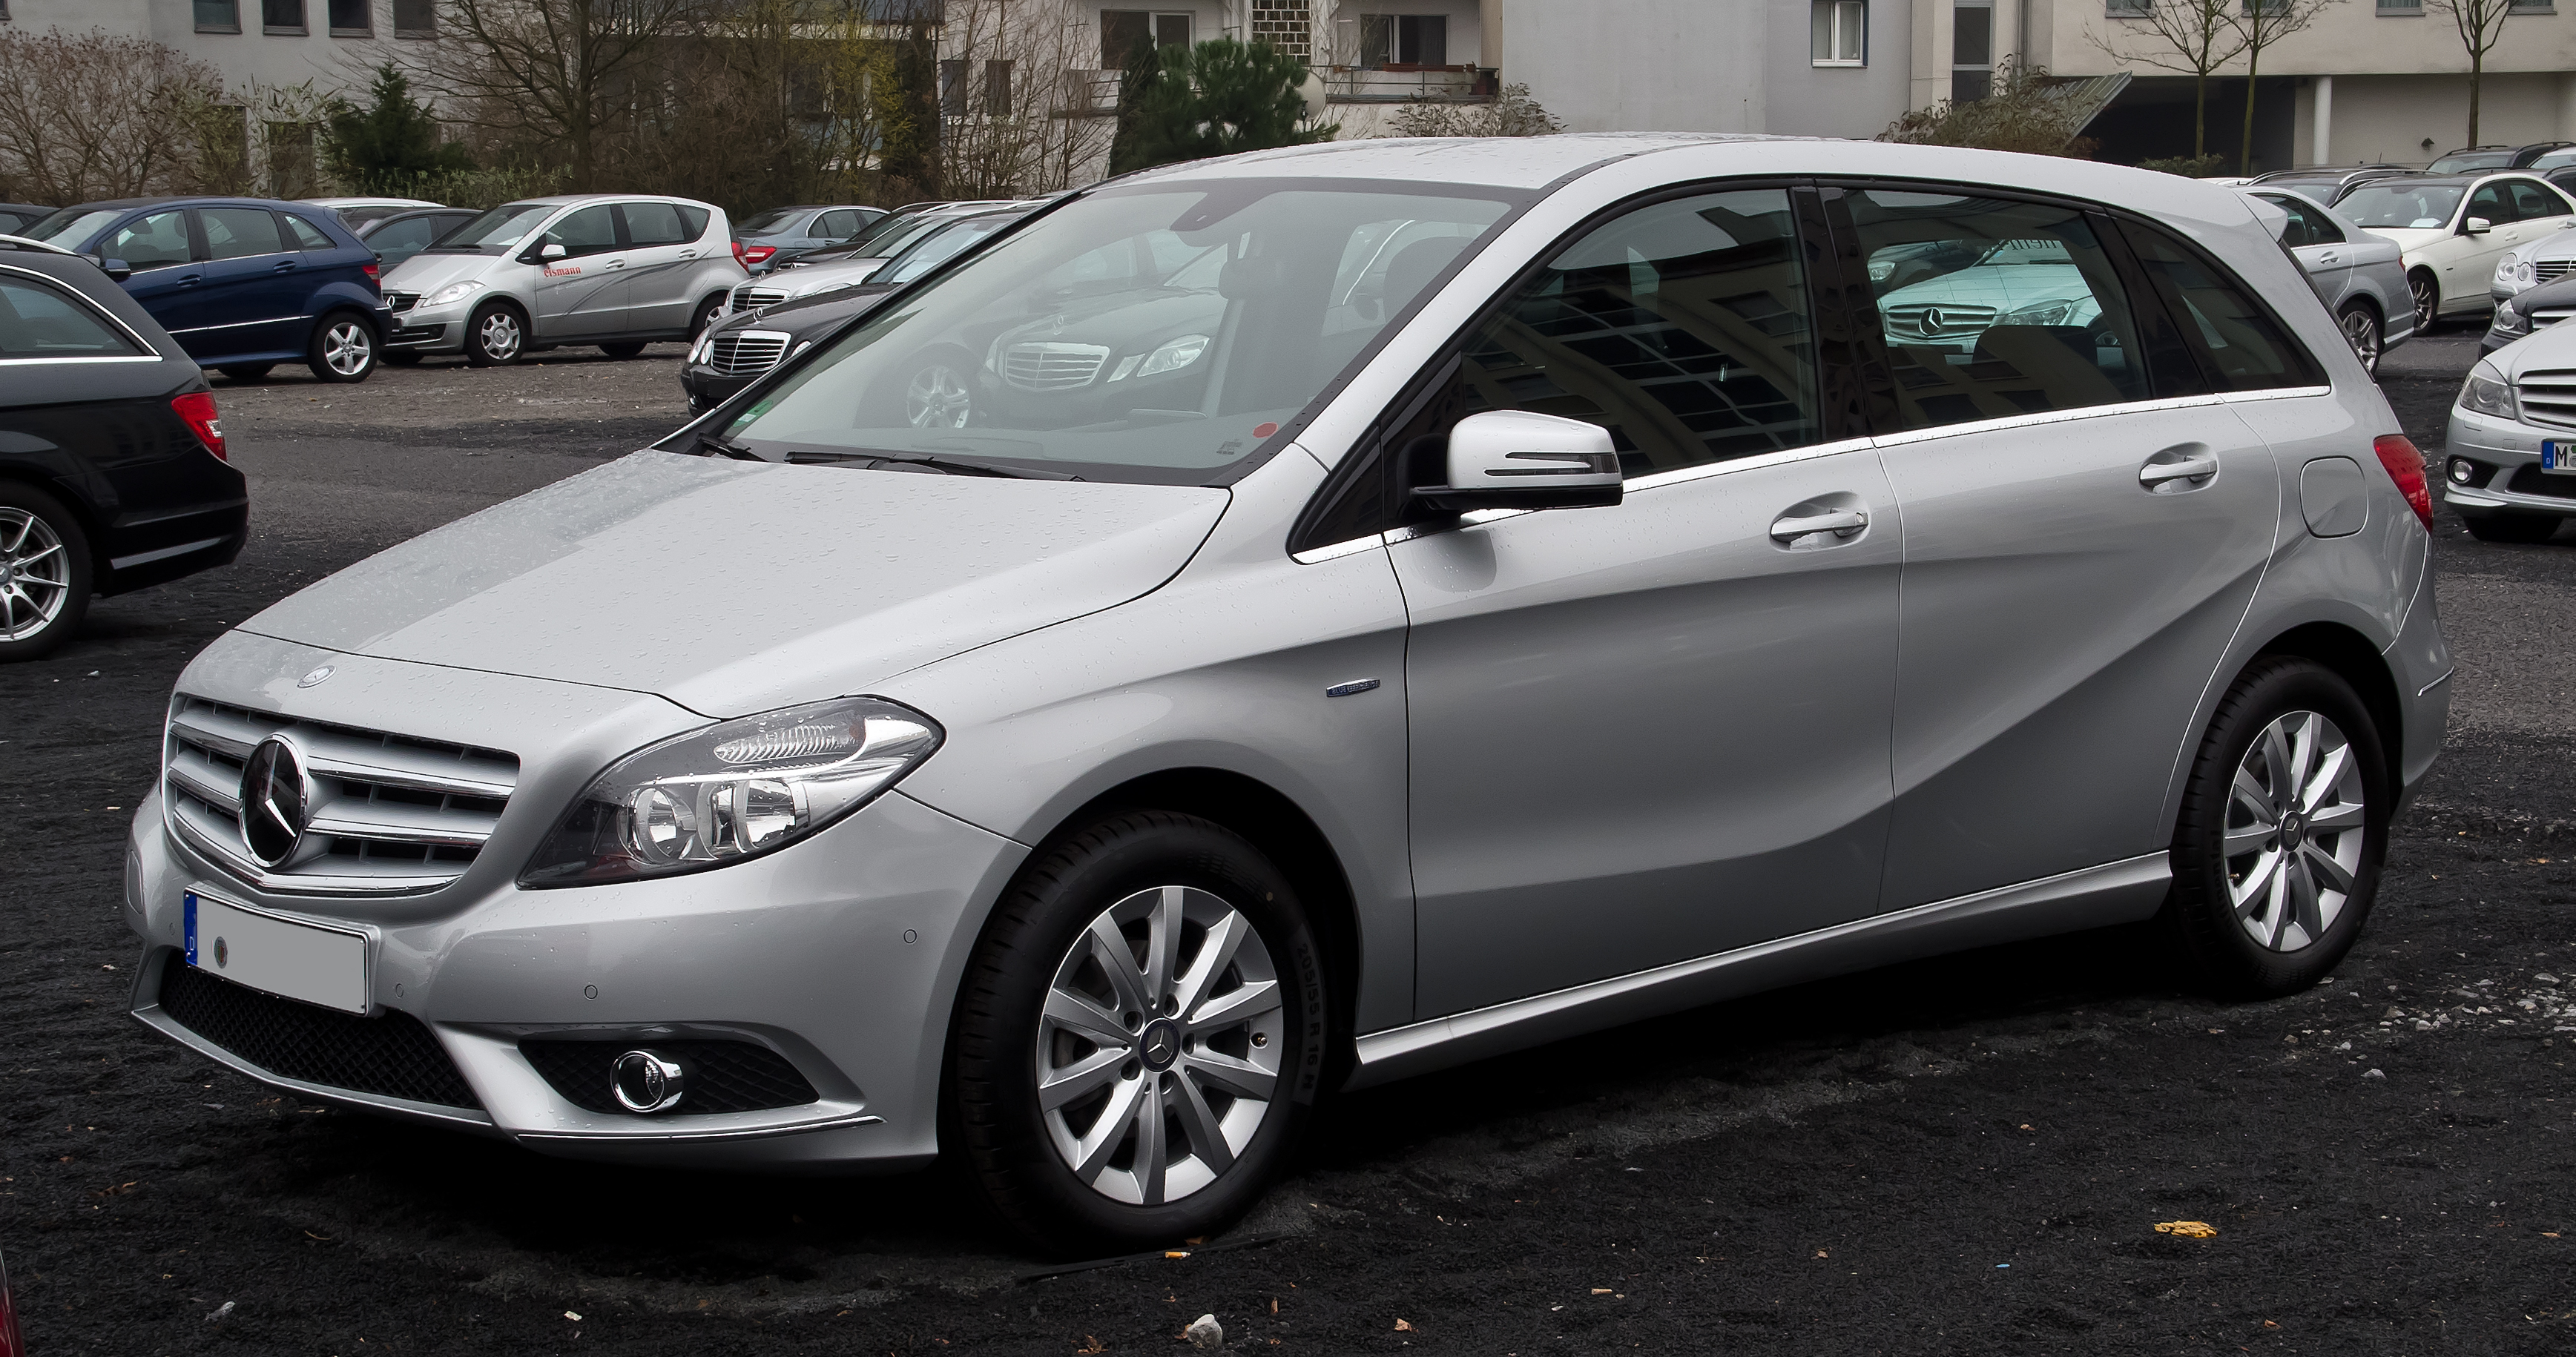 mercedes-benz a 180 blueefficiency-pic. 1